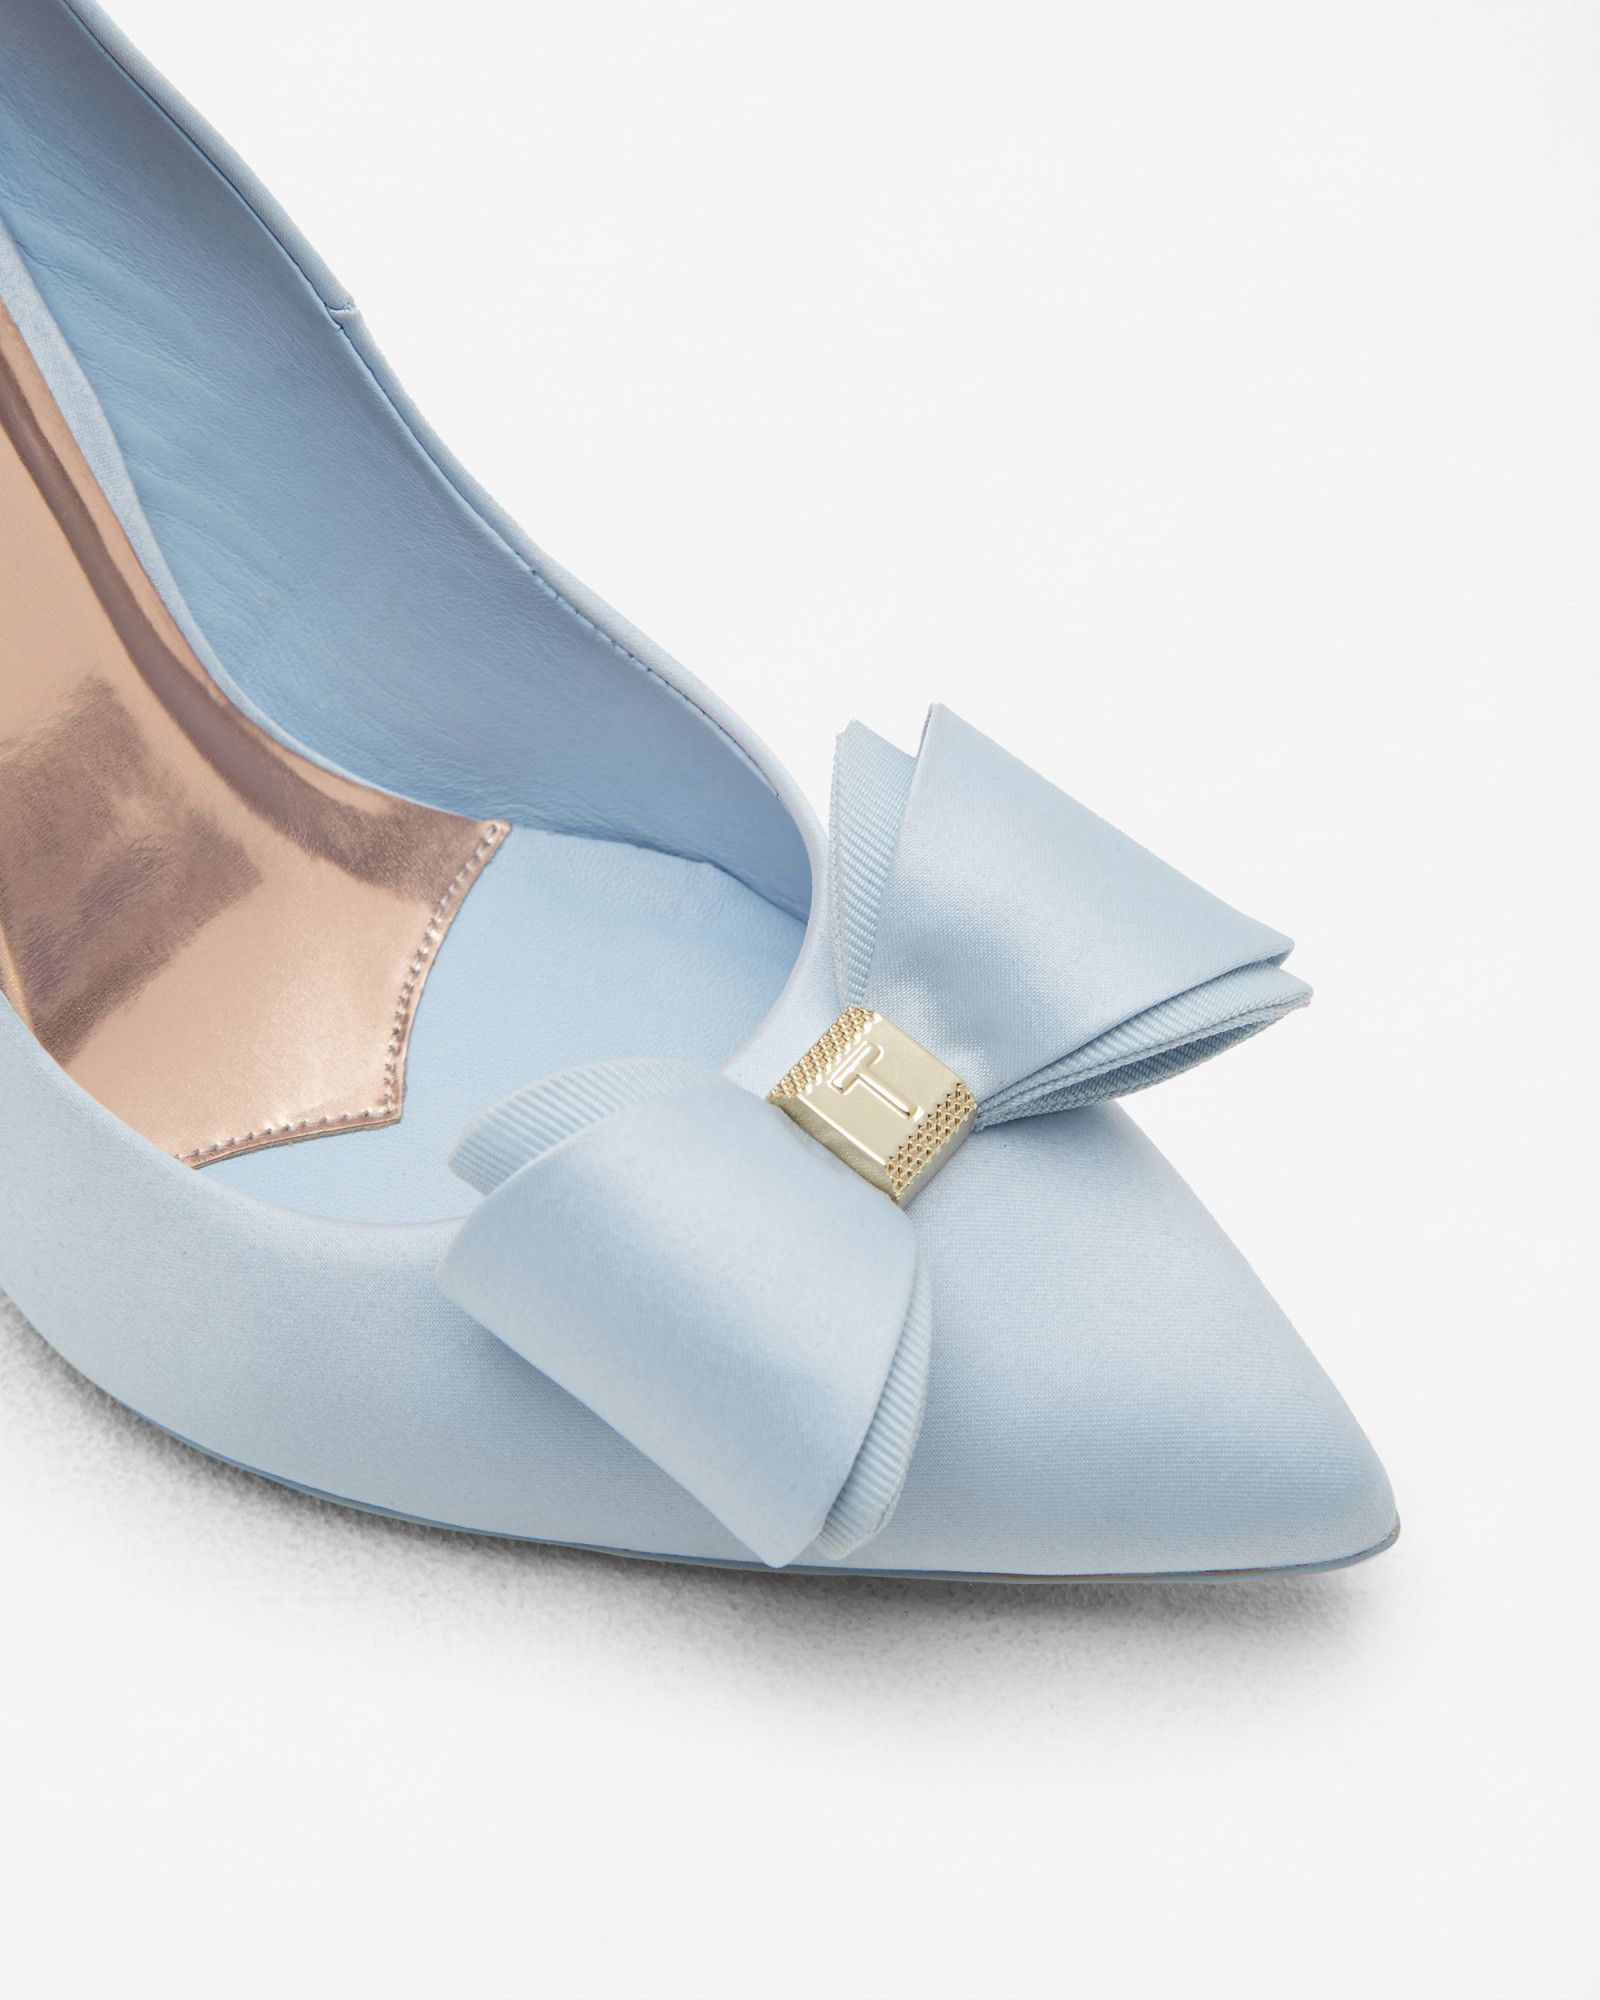 7709f2f18 WedwithTed  tedbaker Bow detail satin courts - Light Blue